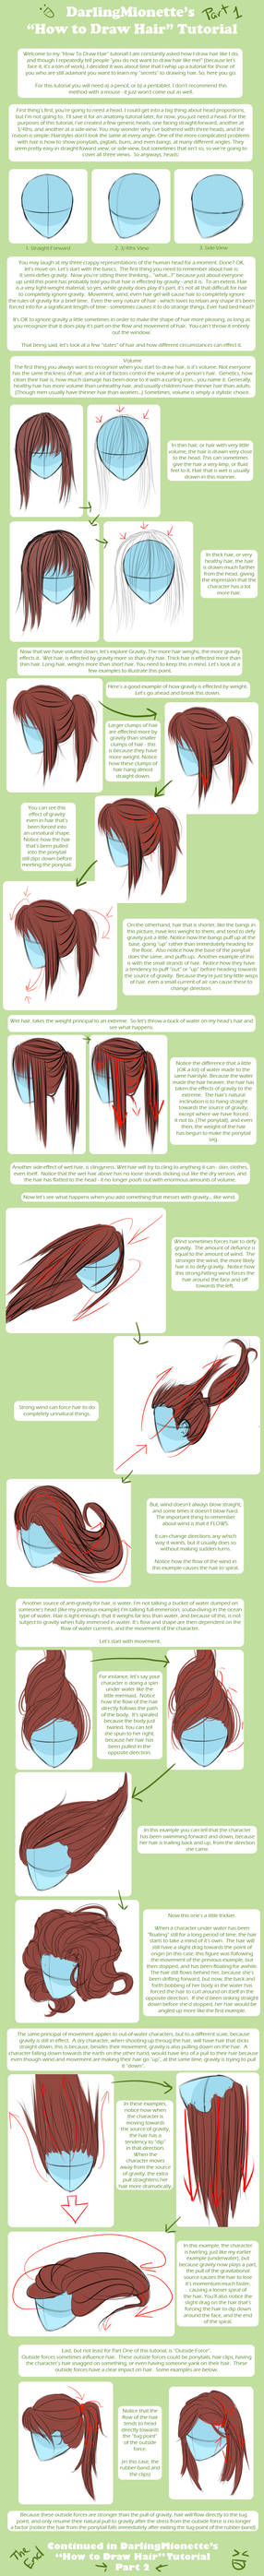 Tutorial - How To Draw Hair 1